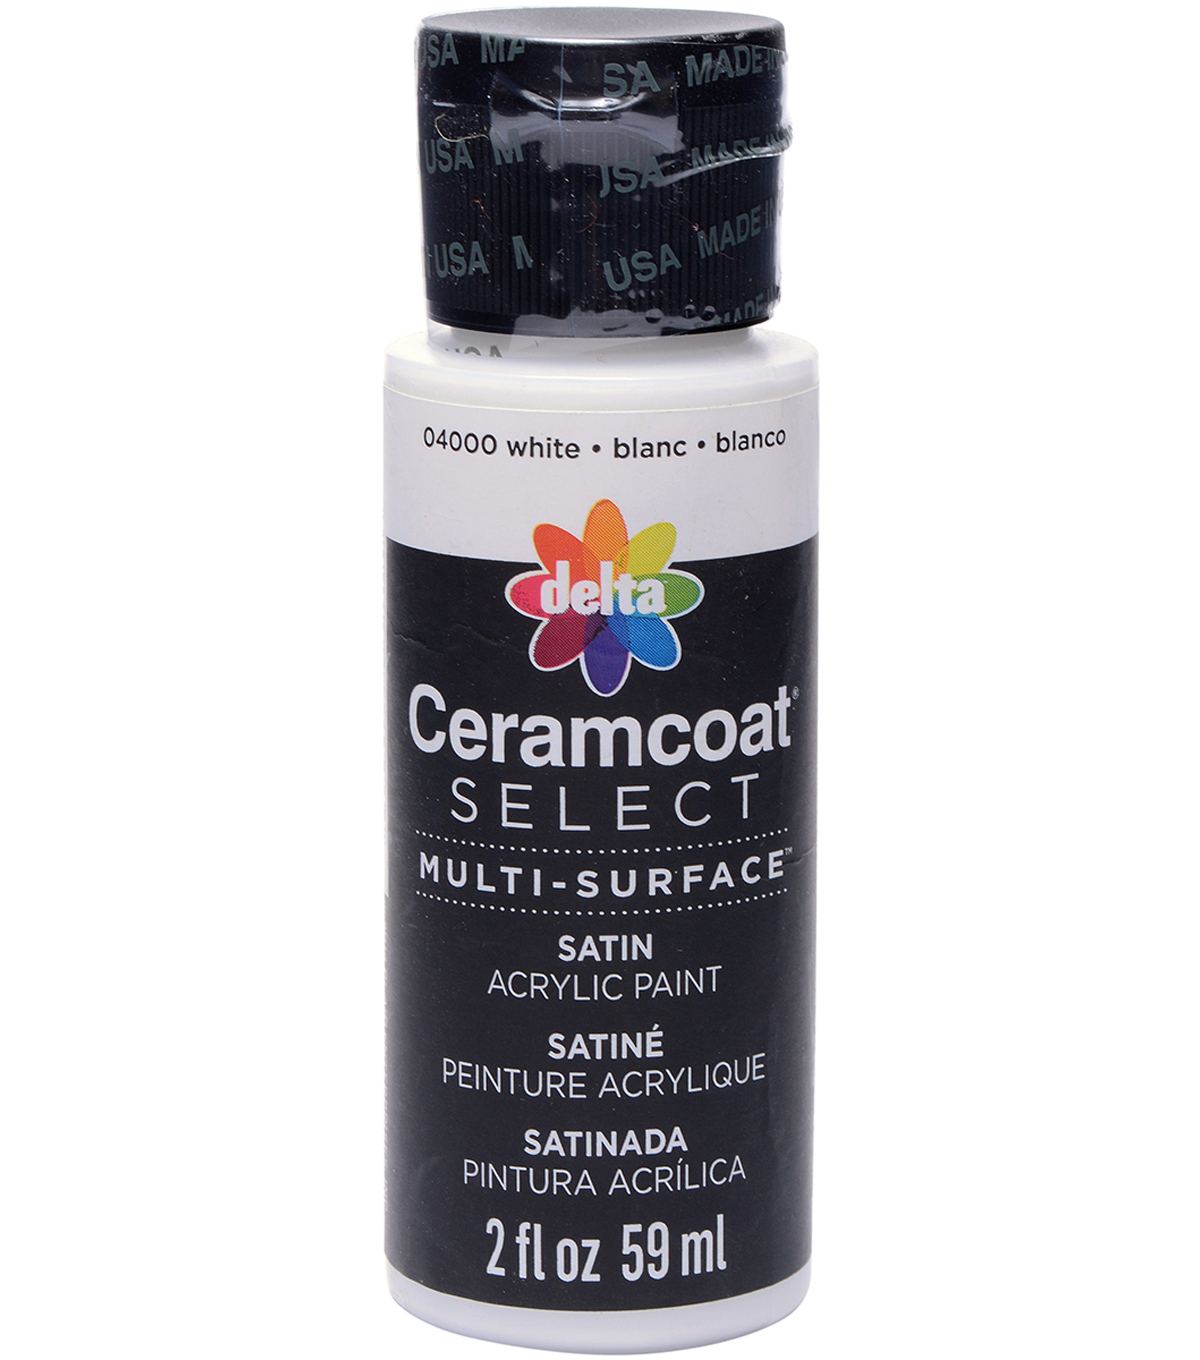 Ceramcoat Select Multi-Surface Paint 2oz